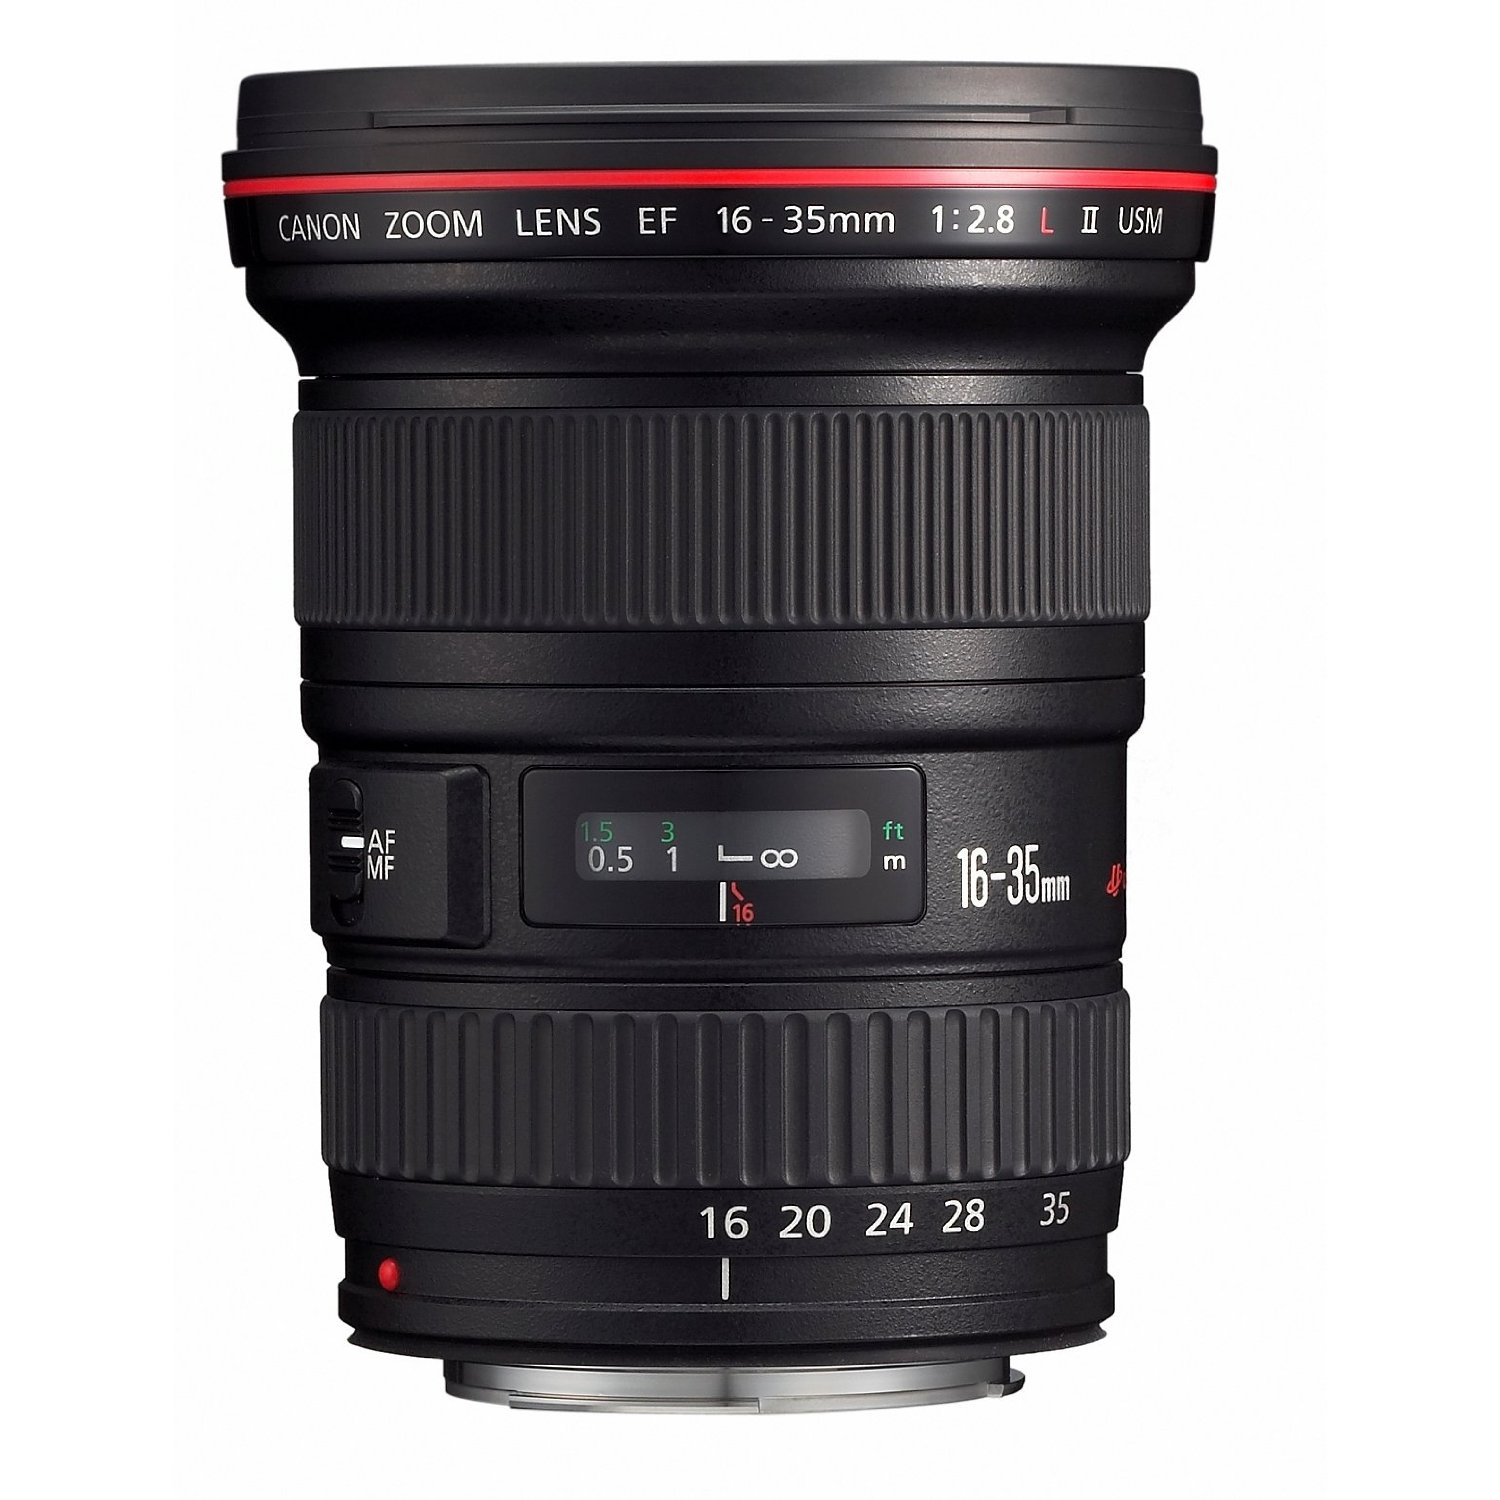 Canon Wedding Photography Lens: See You Behind The Lens... : What Camera Gear To Buy With